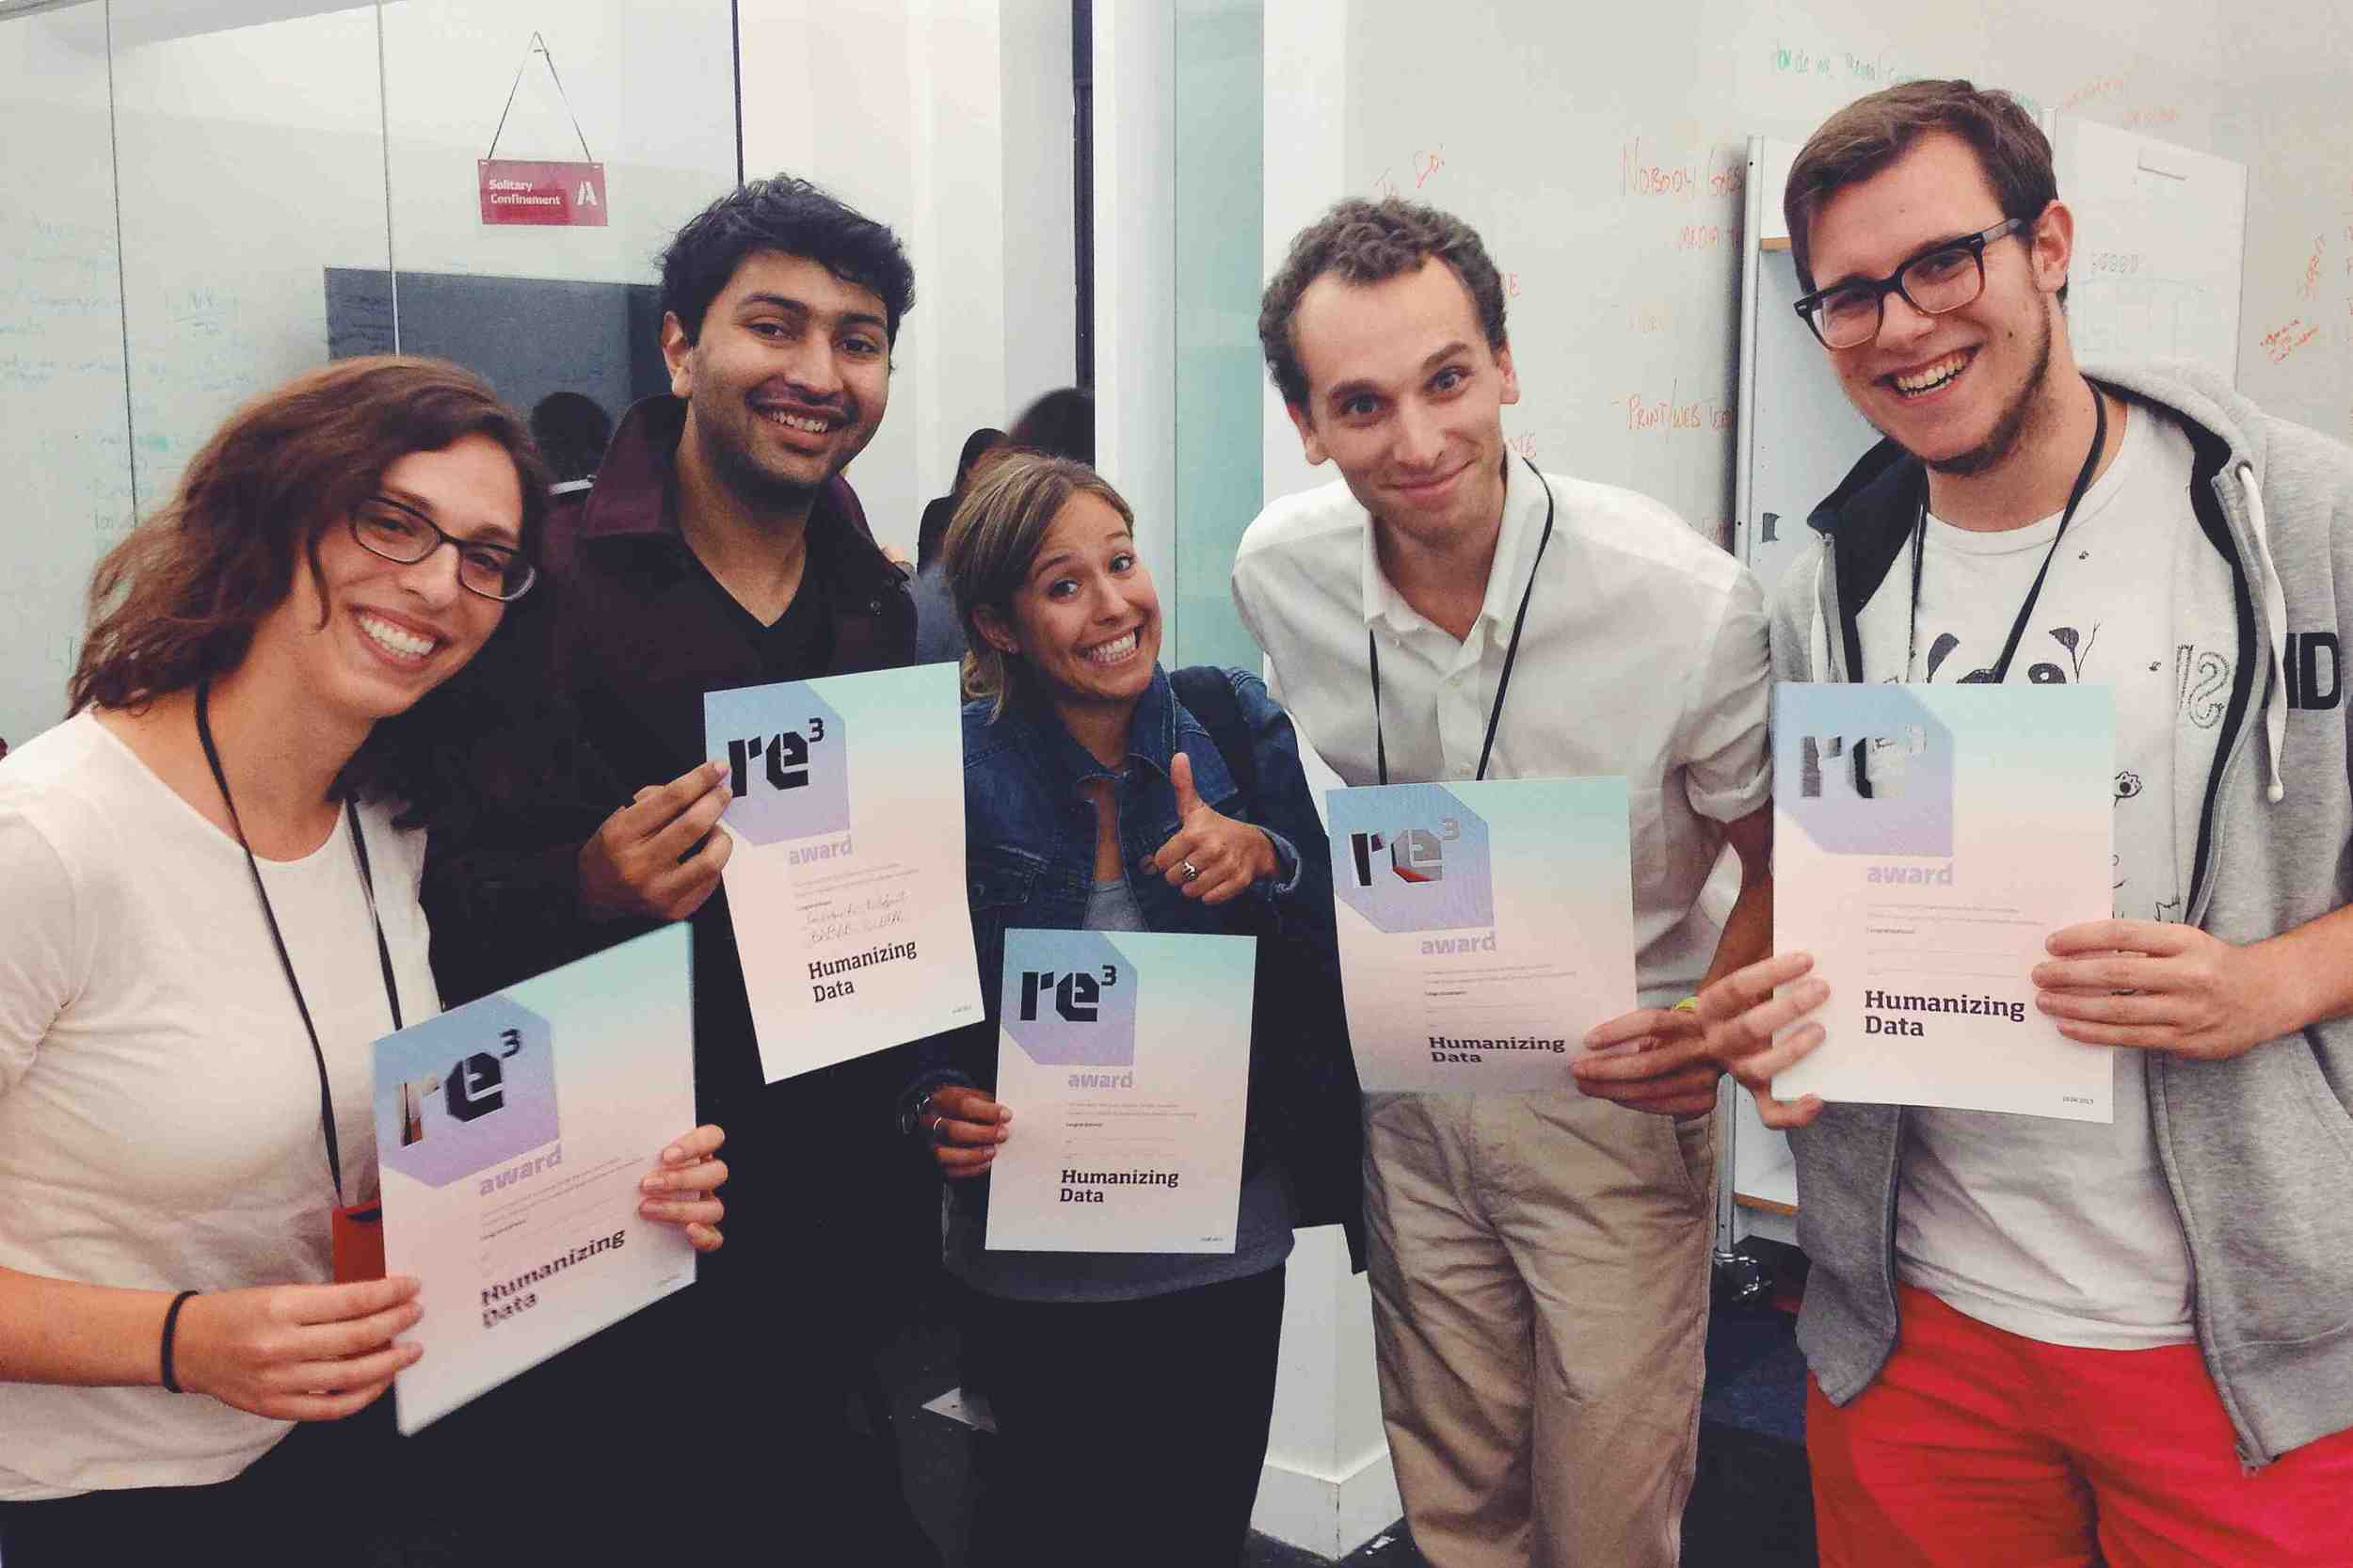 """Pictured: Team photo after winning the """"Humanizing Data Award"""""""